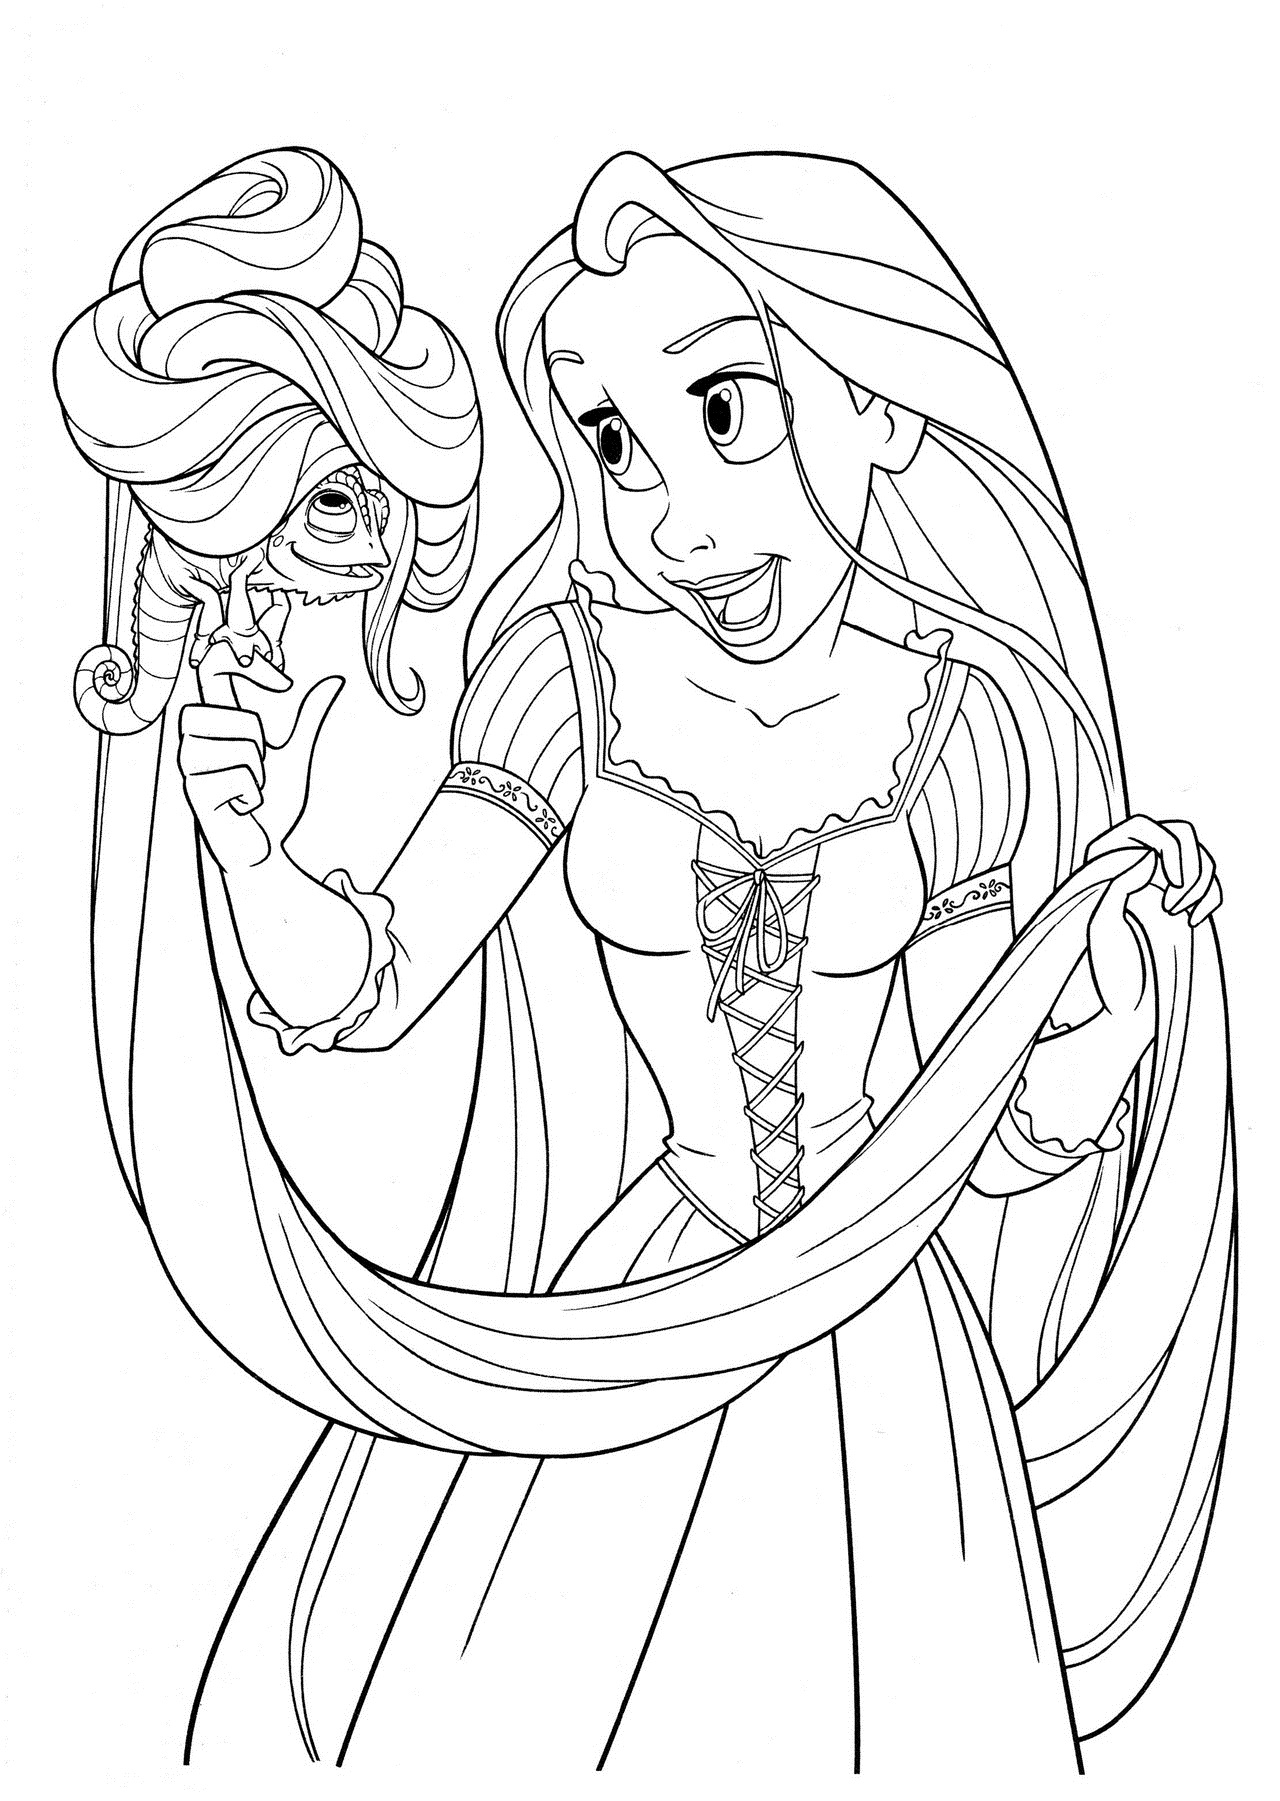 tangled coloring pages for kids